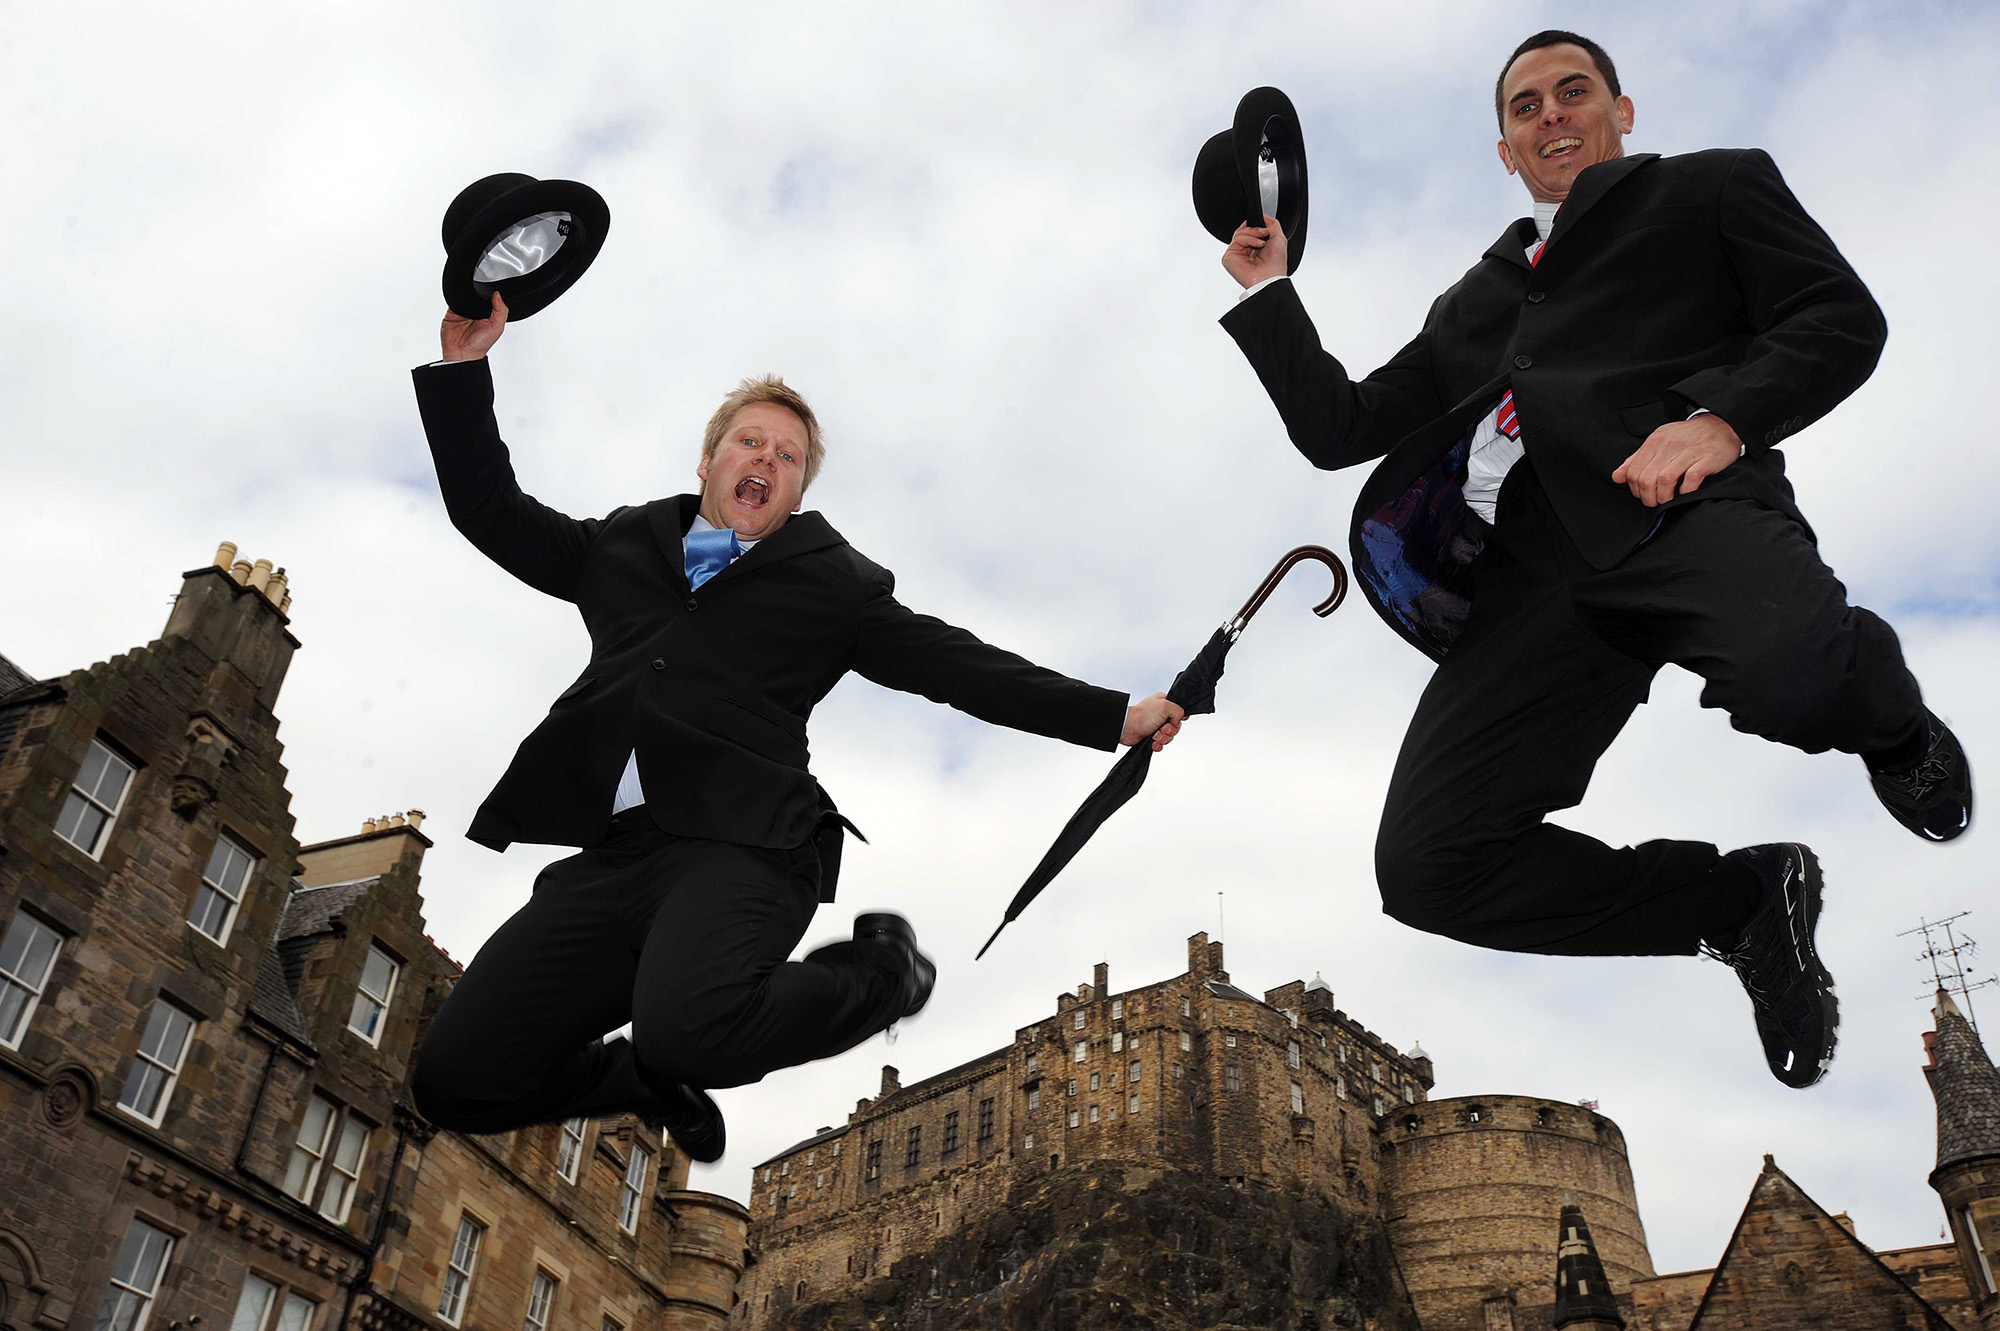 Jumping for joy in Edinburgh